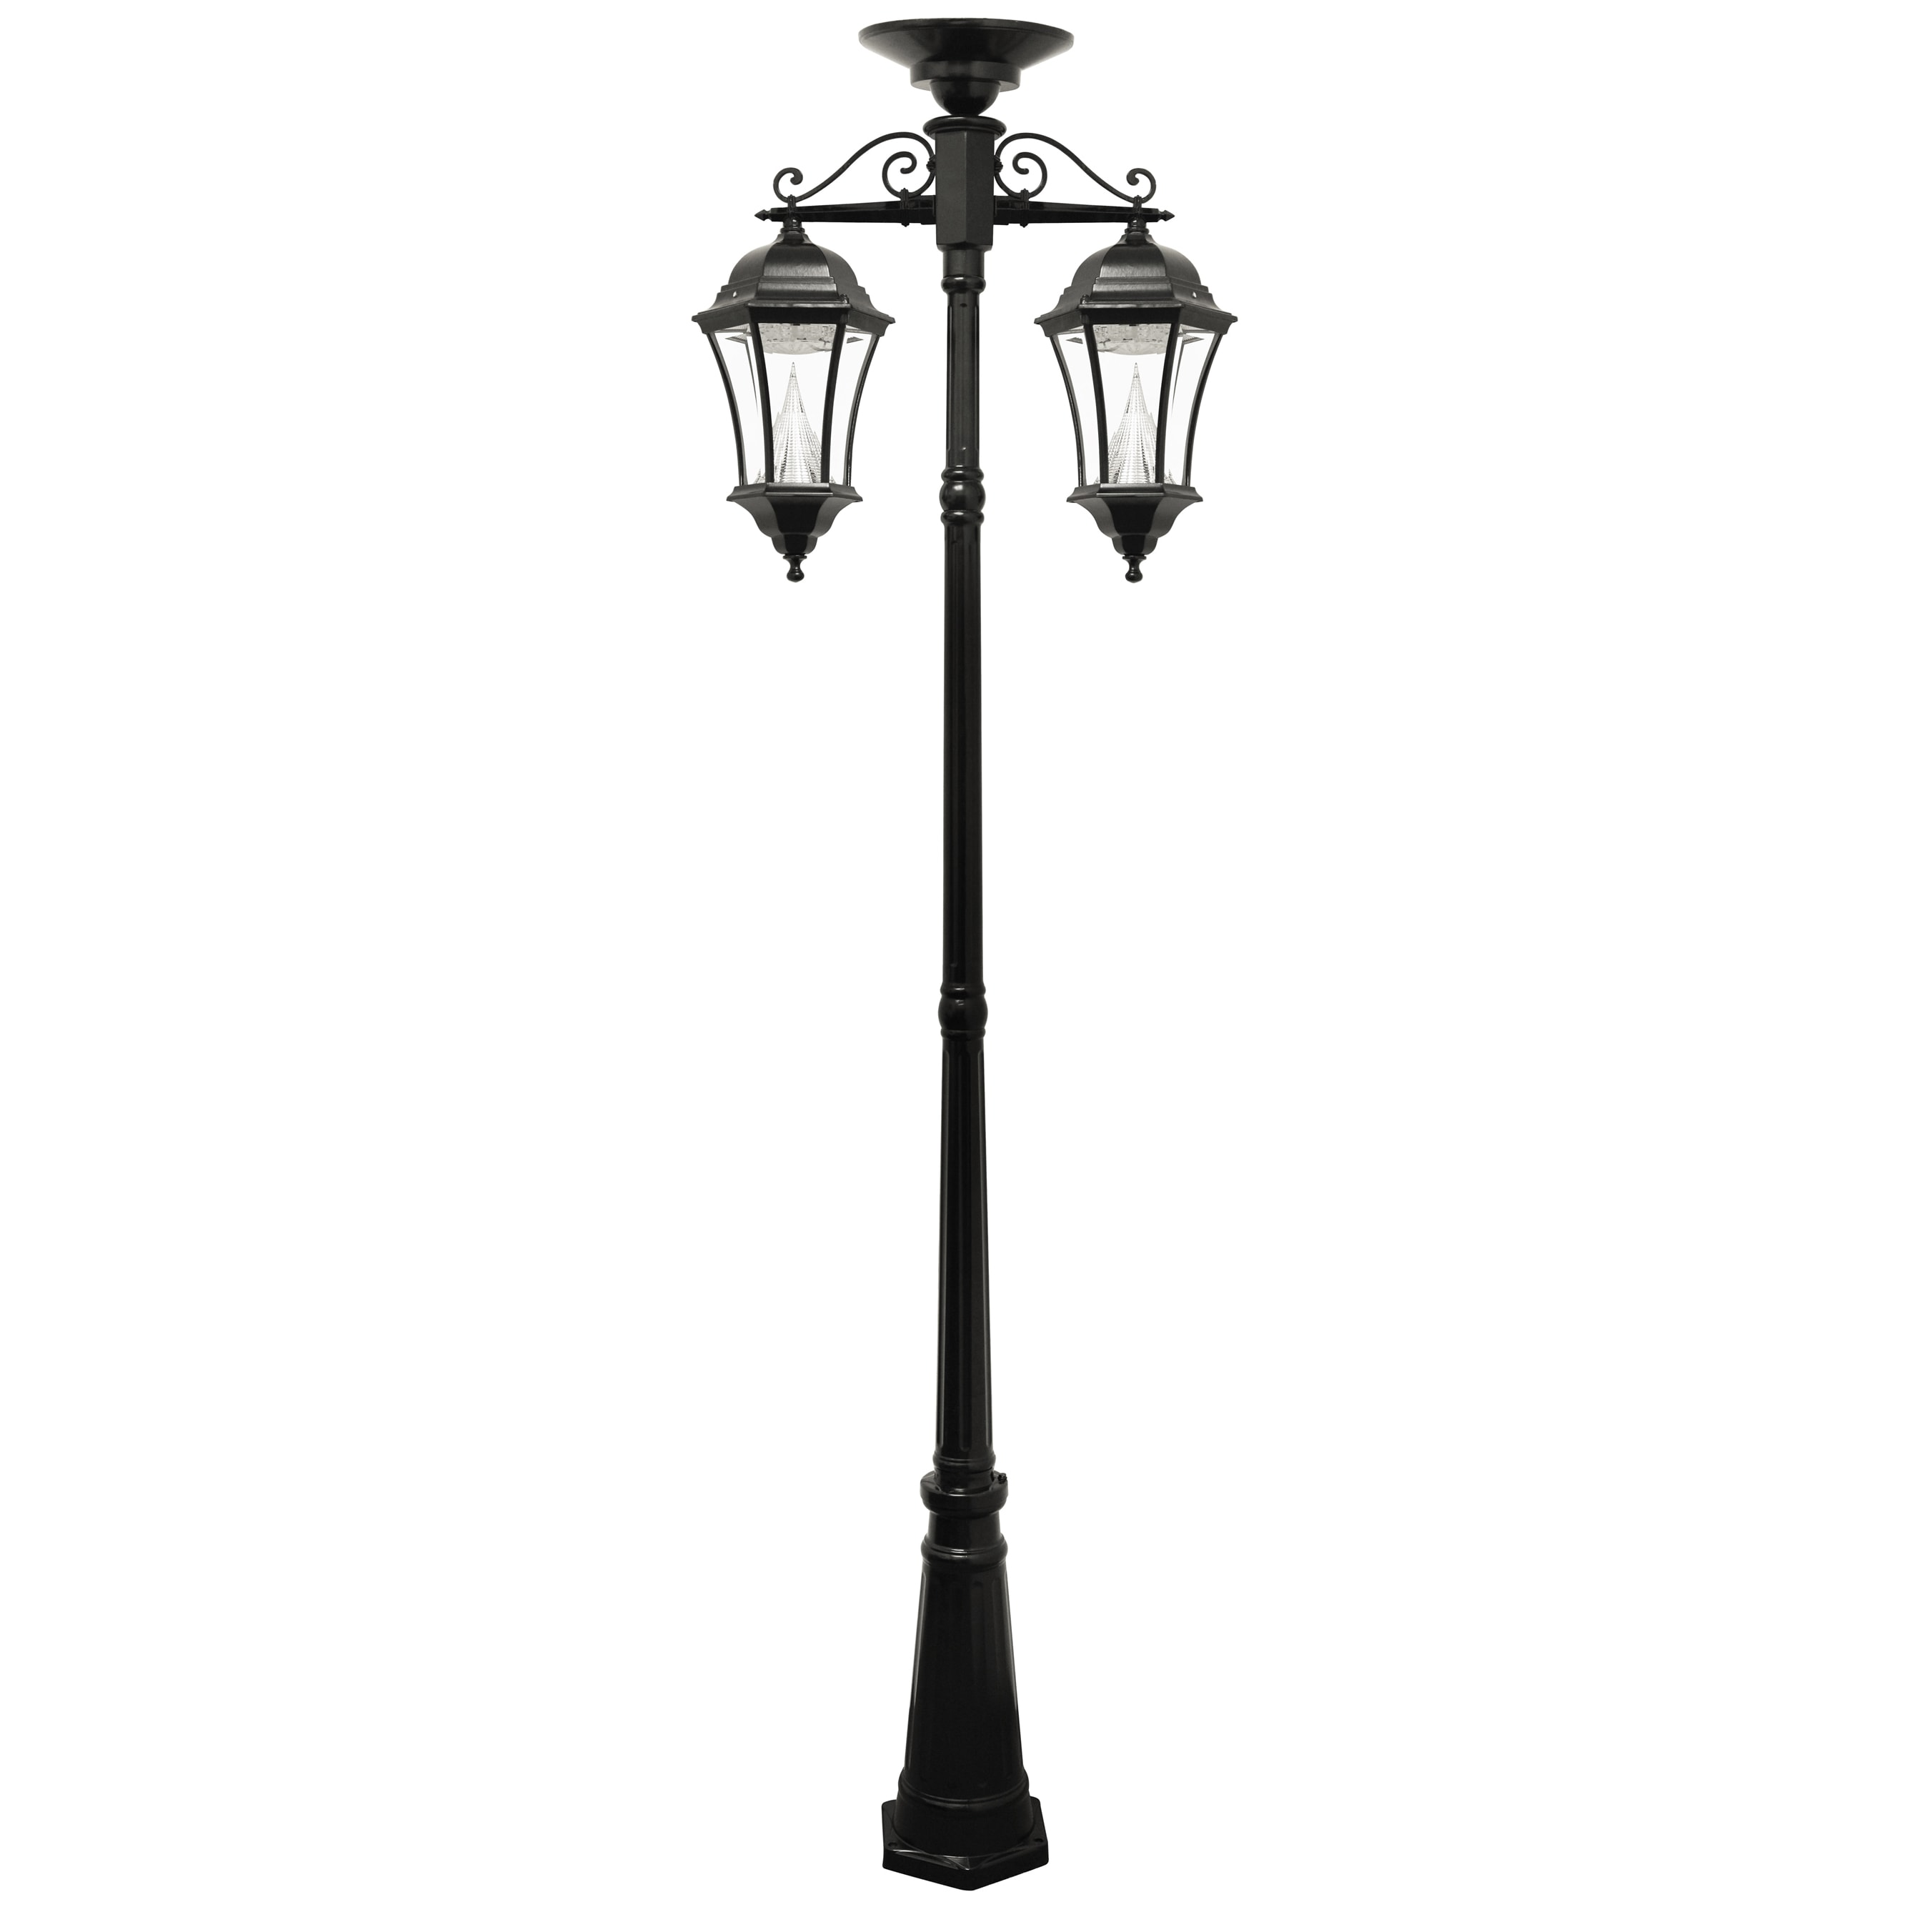 Replacement parts for outdoor lamp post | Lighting | Compare ...